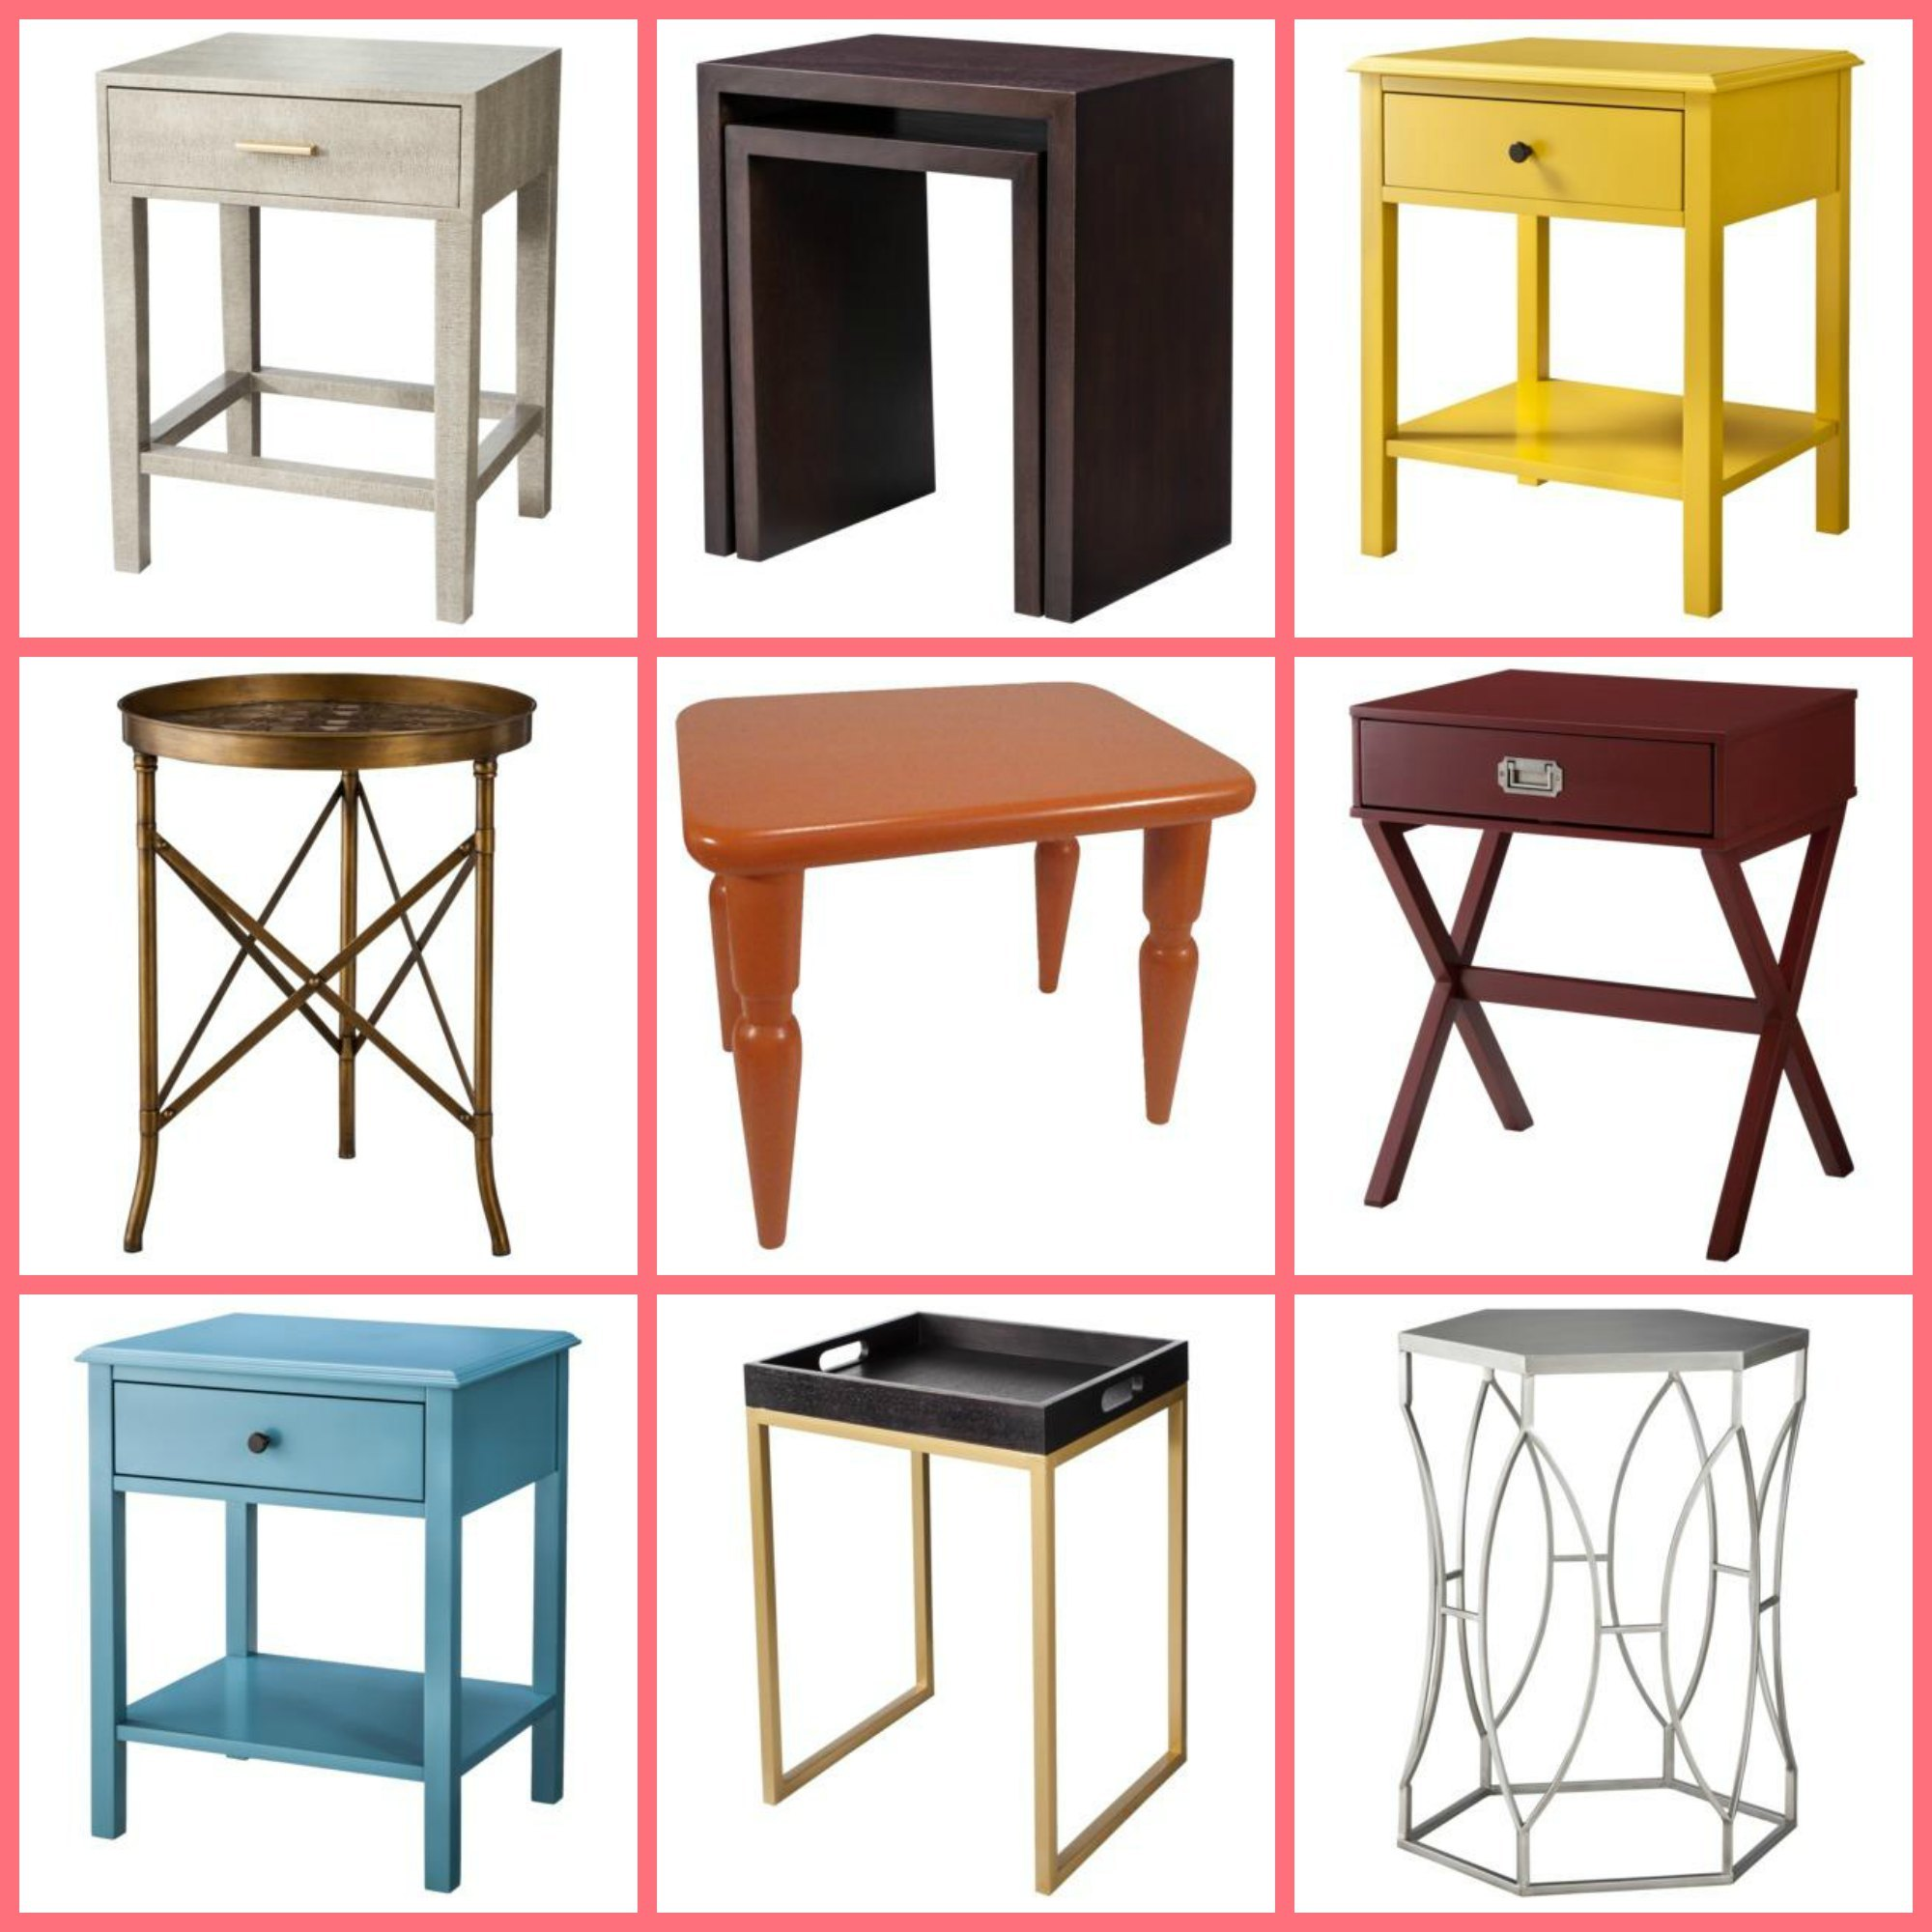 target threshold accent tables take your targertthr drawer table clockwise from top left jcpenney lamps rectangular patio umbrellas dark brown side lounge furniture baby changing